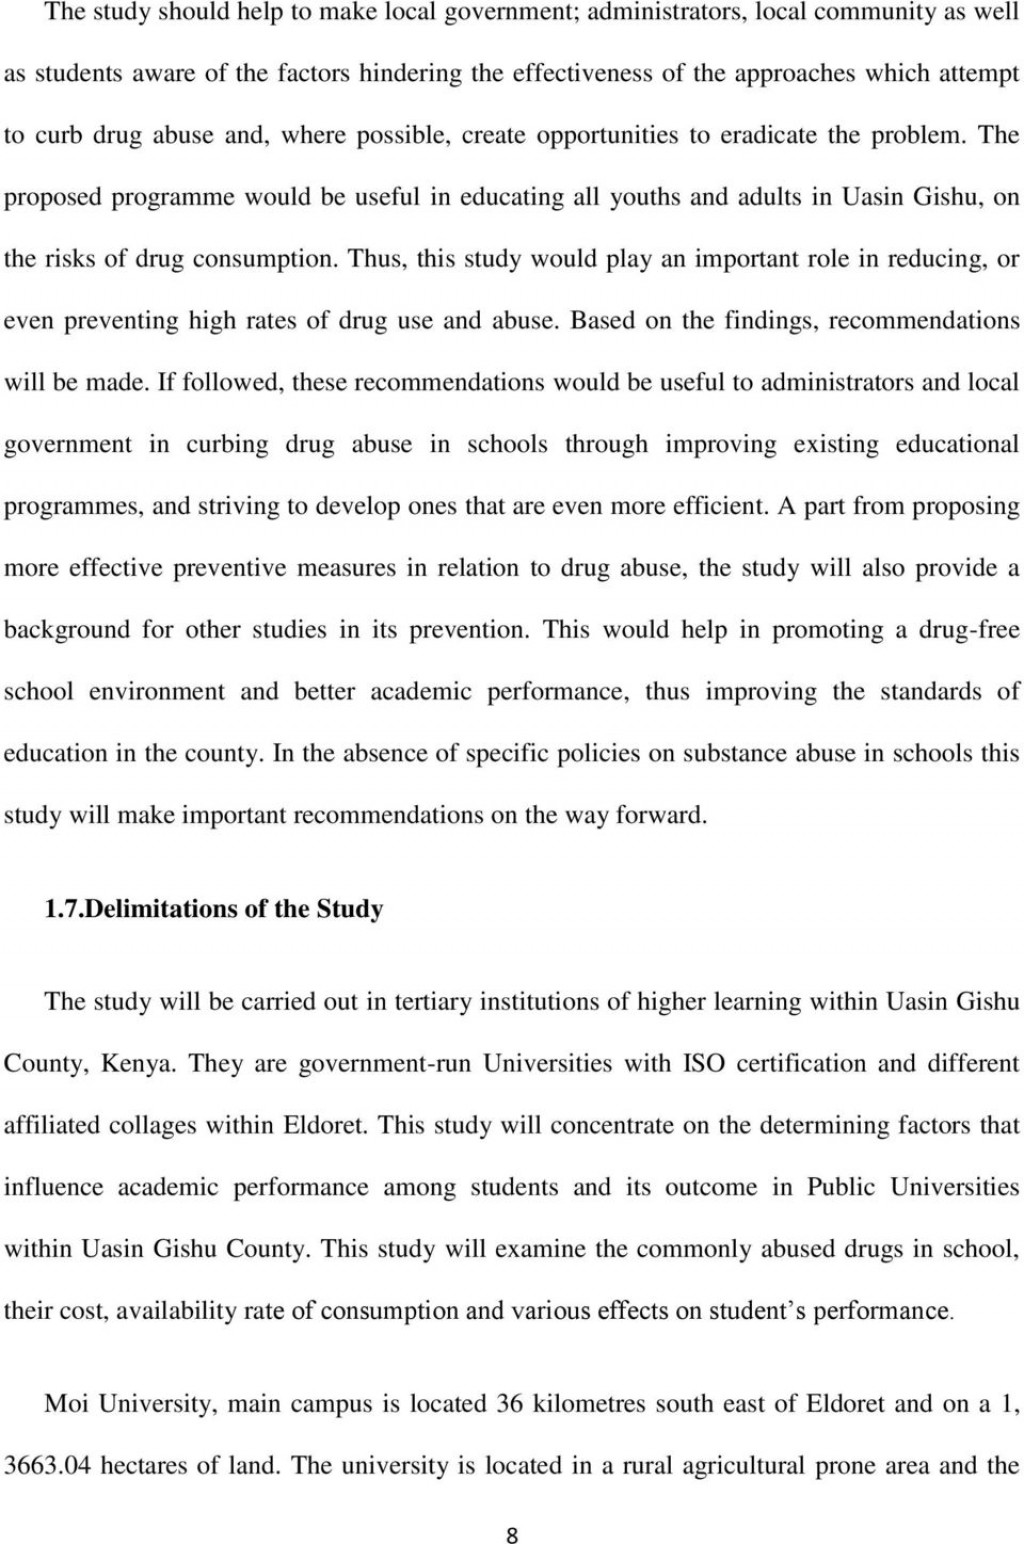 007 Drugs Essays Drug Addiction Essay Topics Abuse College Pa In Students Example Stirring About Short Tagalog Persuasive Illegal Argumentative Large